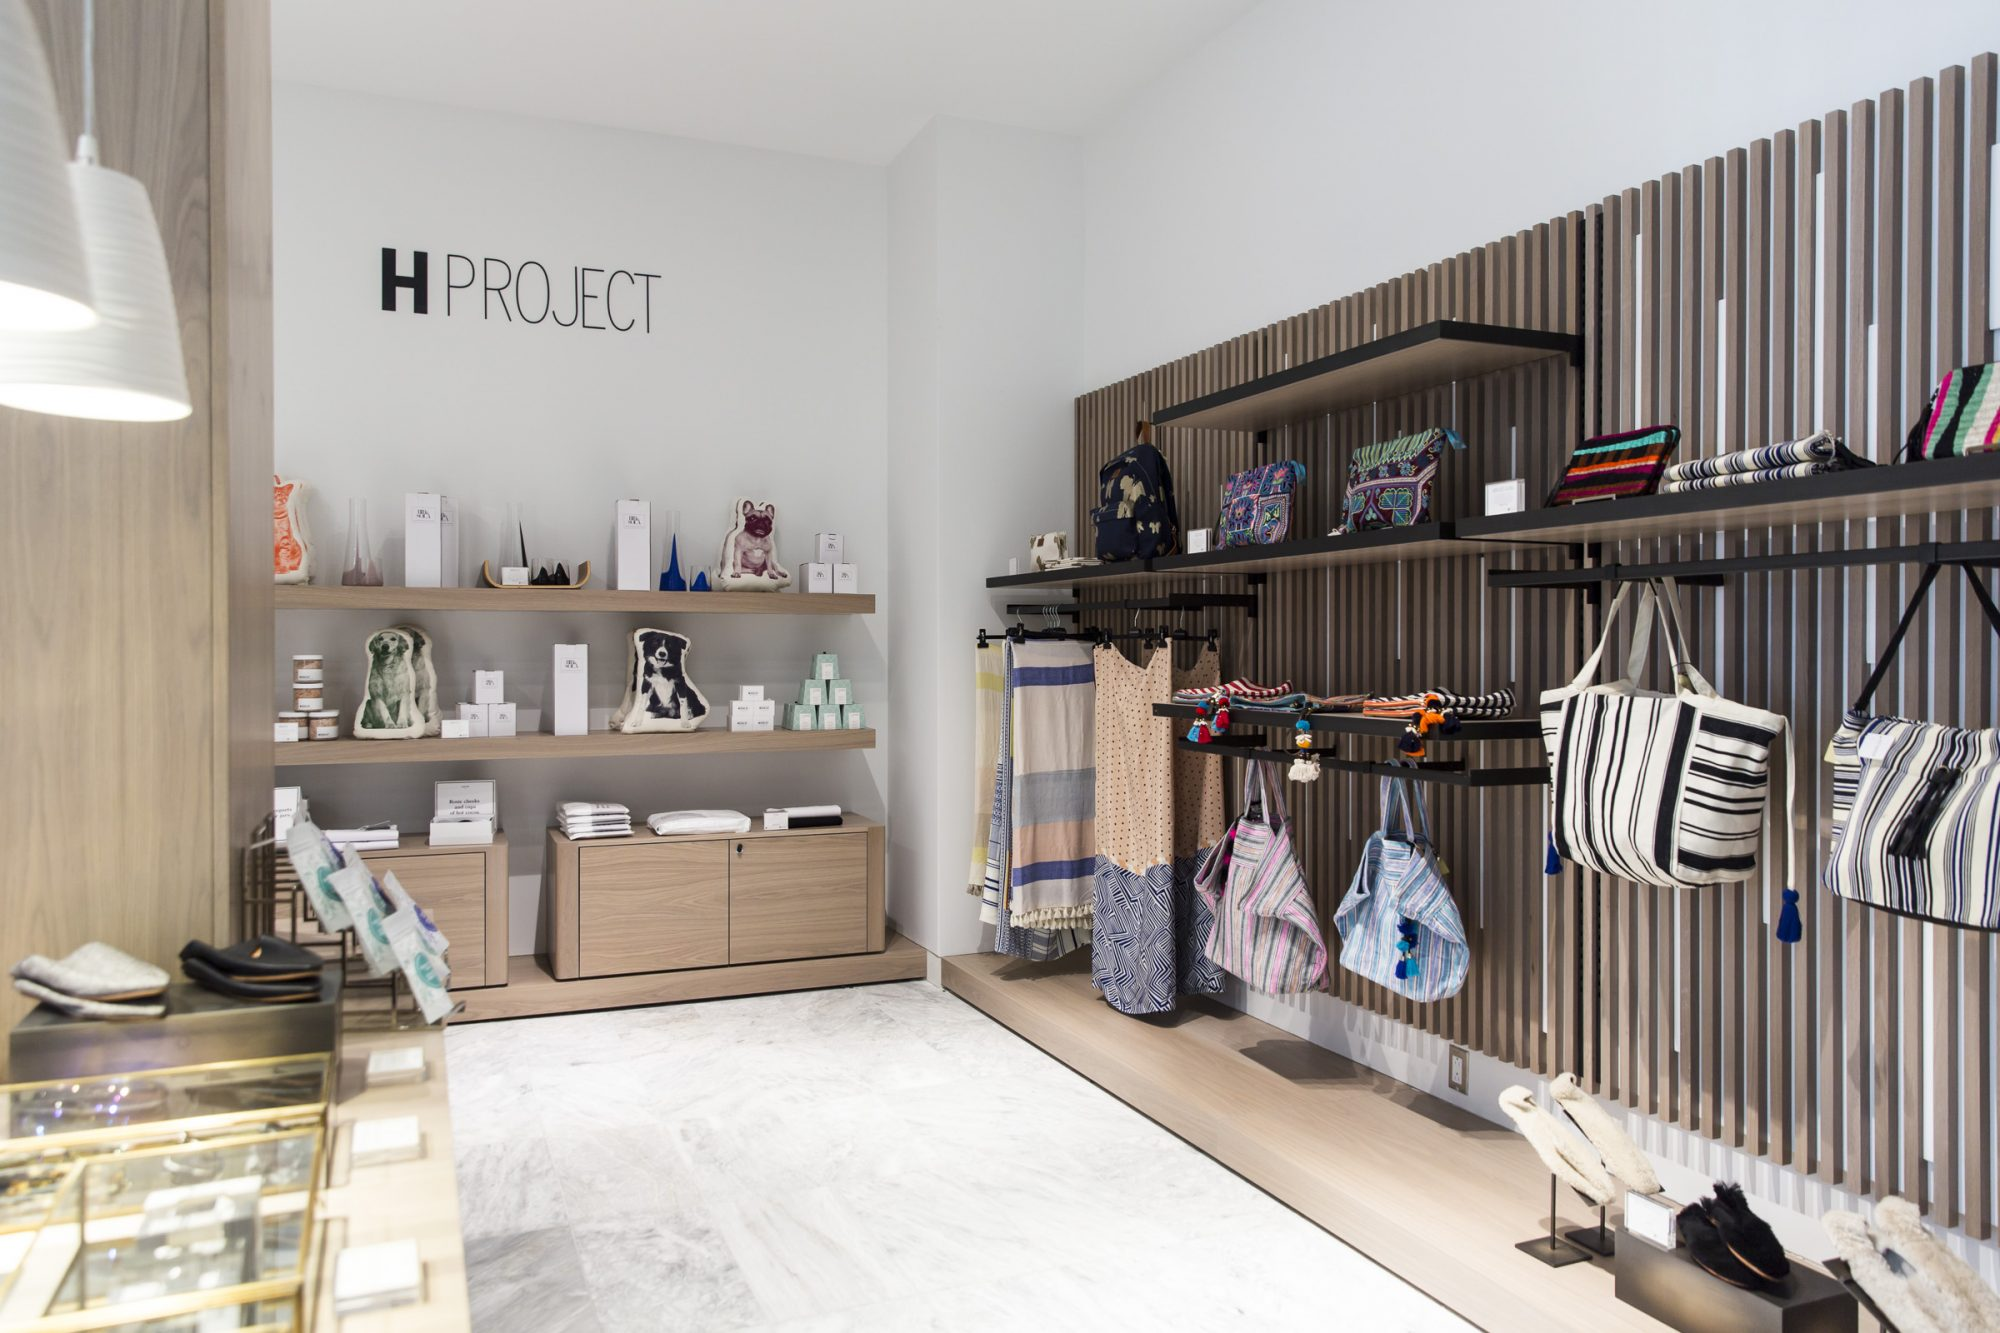 H Project